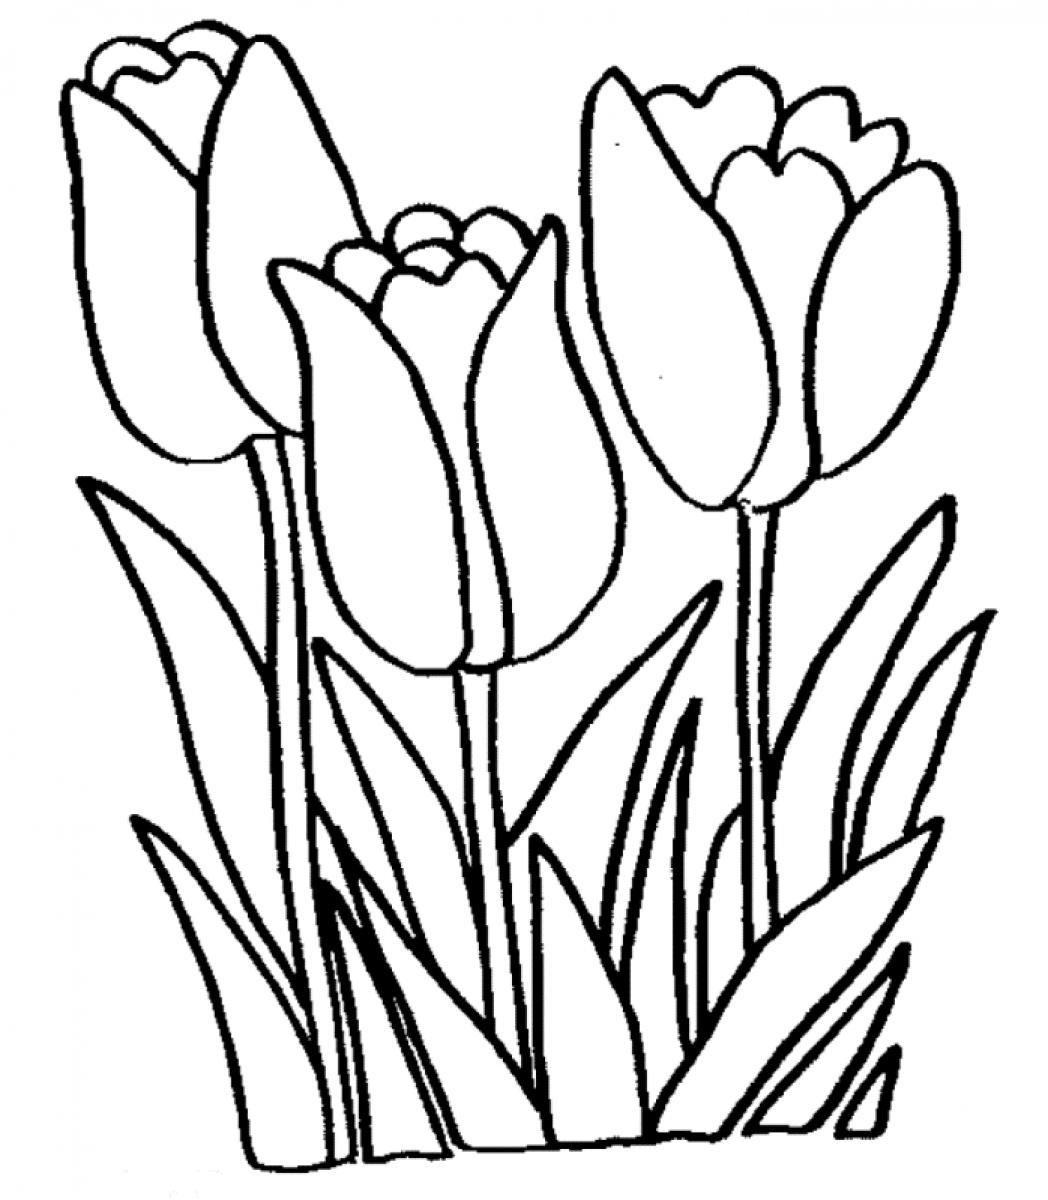 pictures of flowers to color tulip coloring pages to download and print for free flowers color pictures to of